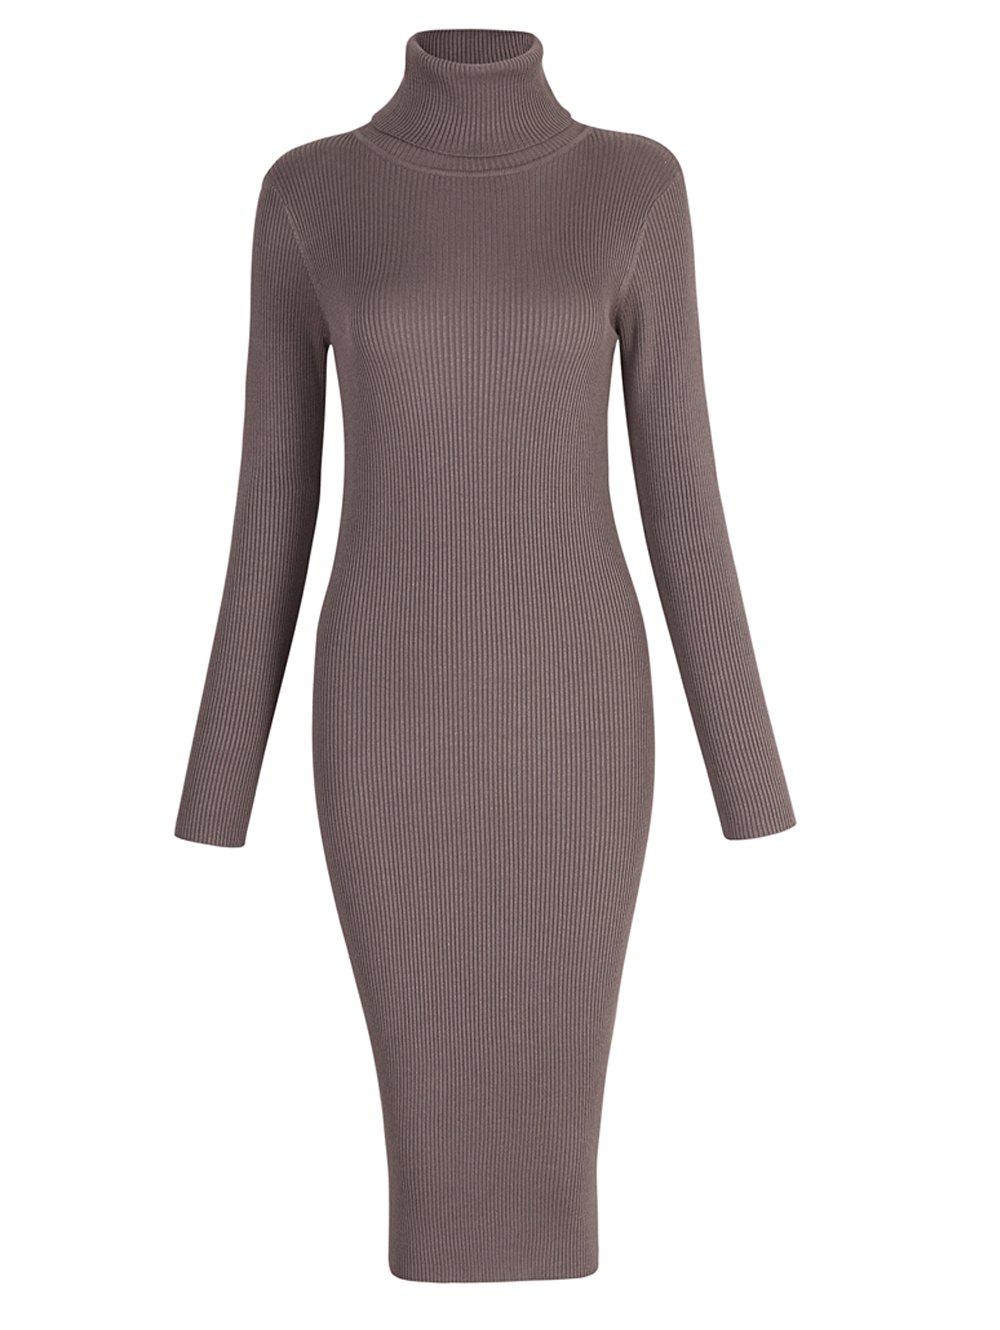 Latest Elastic Turtleneck Long Sleeve Bodycon Slim Midi Knitted Dress